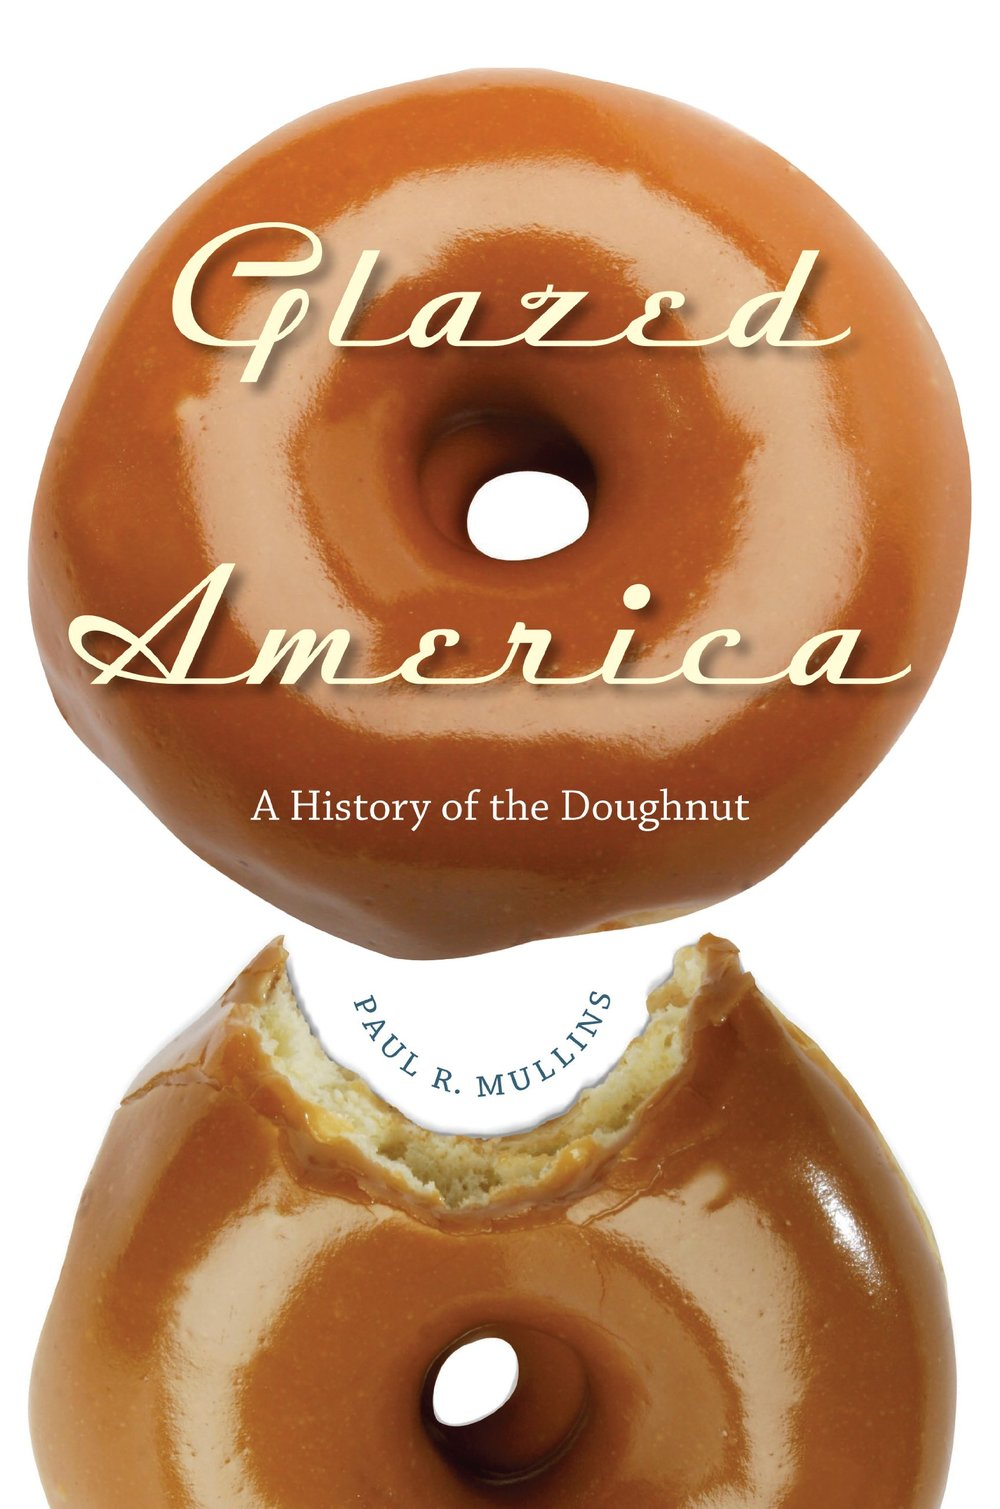 From the URC Library: A History of America's Favorite Bad Habit - How America shaped the doughnut. And more importantly, how the doughnut shaped America.